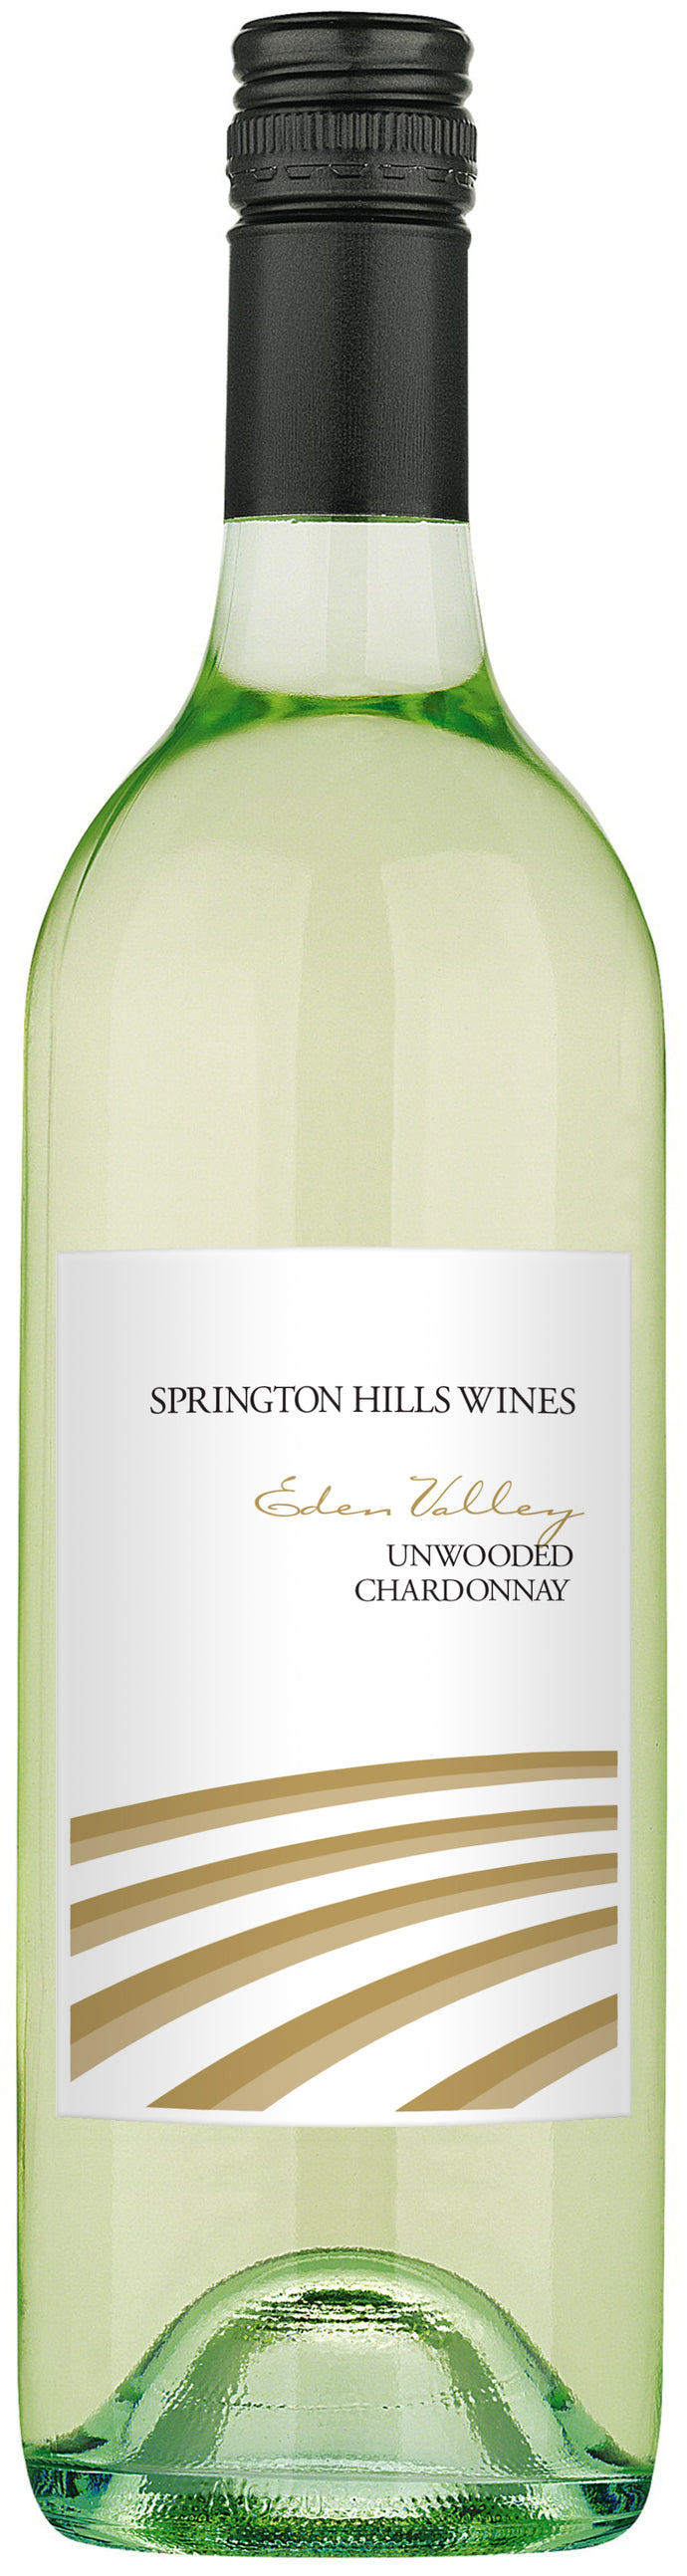 Wine - Eden Valley Unwooded Chardonnay 750ml